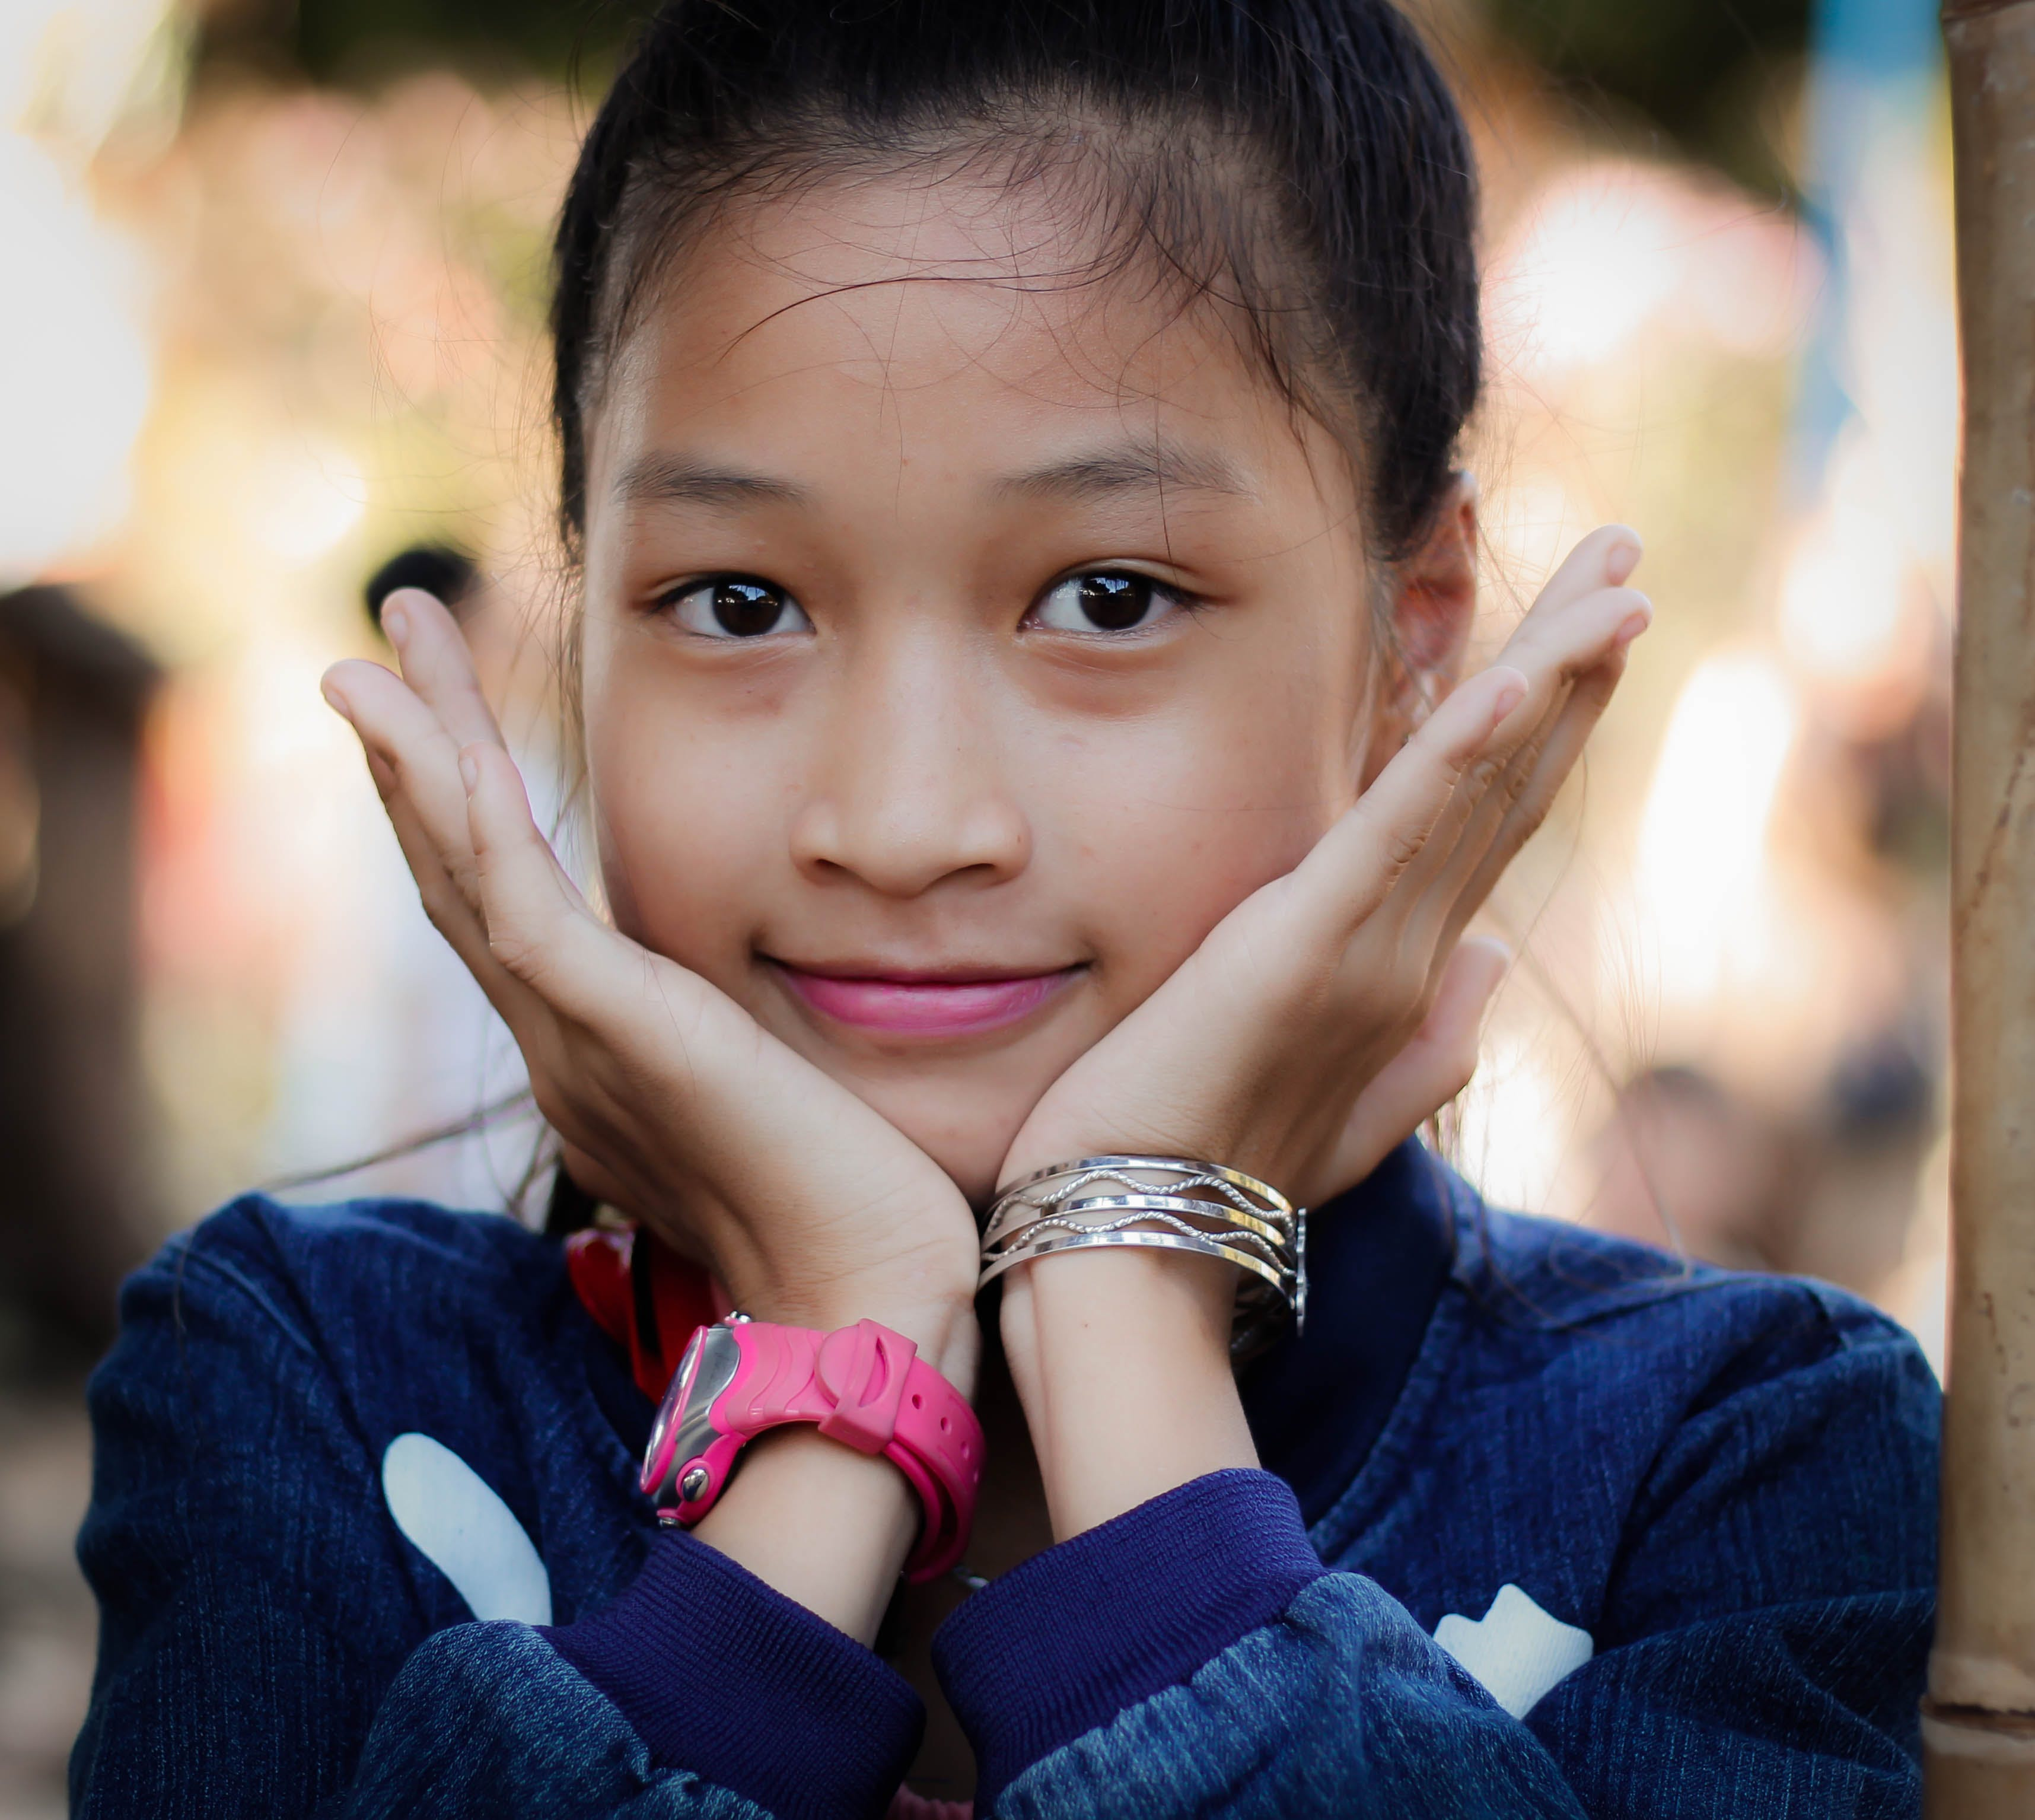 Girl Wearing Blue Long-sleeved Top Resting Face On Hands